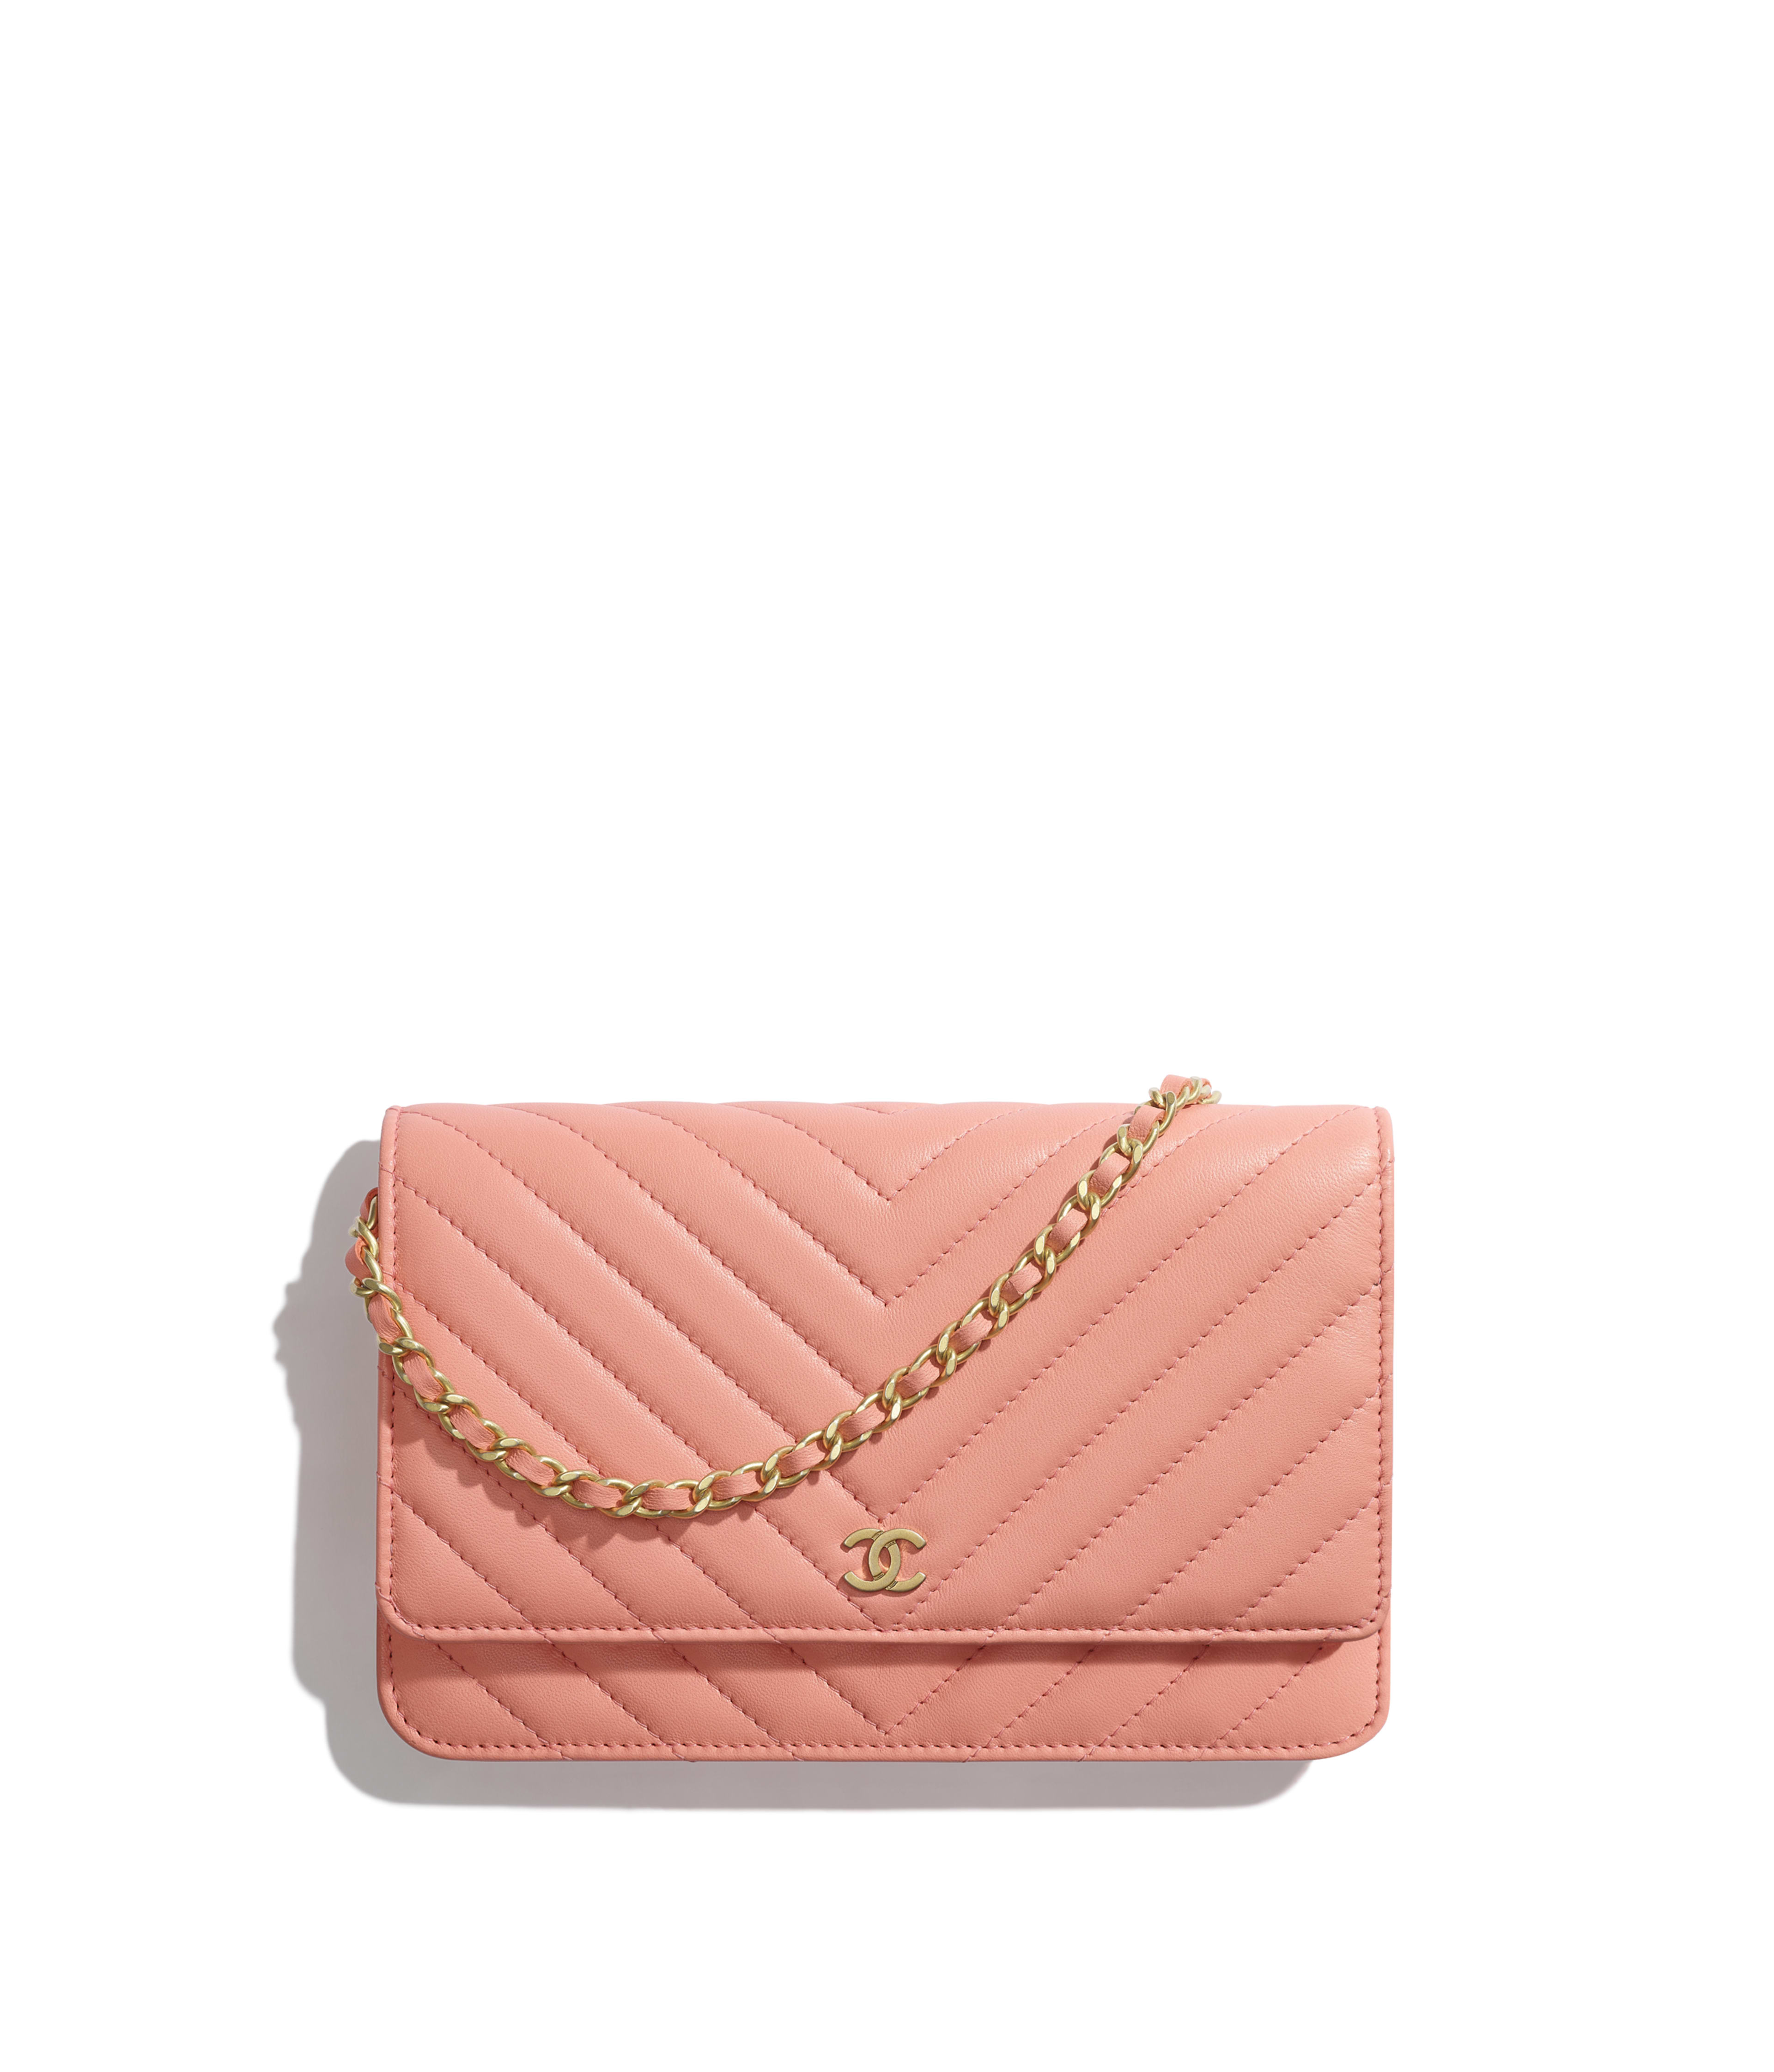 22390a1cb2e8 Classic Wallet on Chain Lambskin & Gold-Tone Metal, Coral Ref.  A33814Y33122N0899